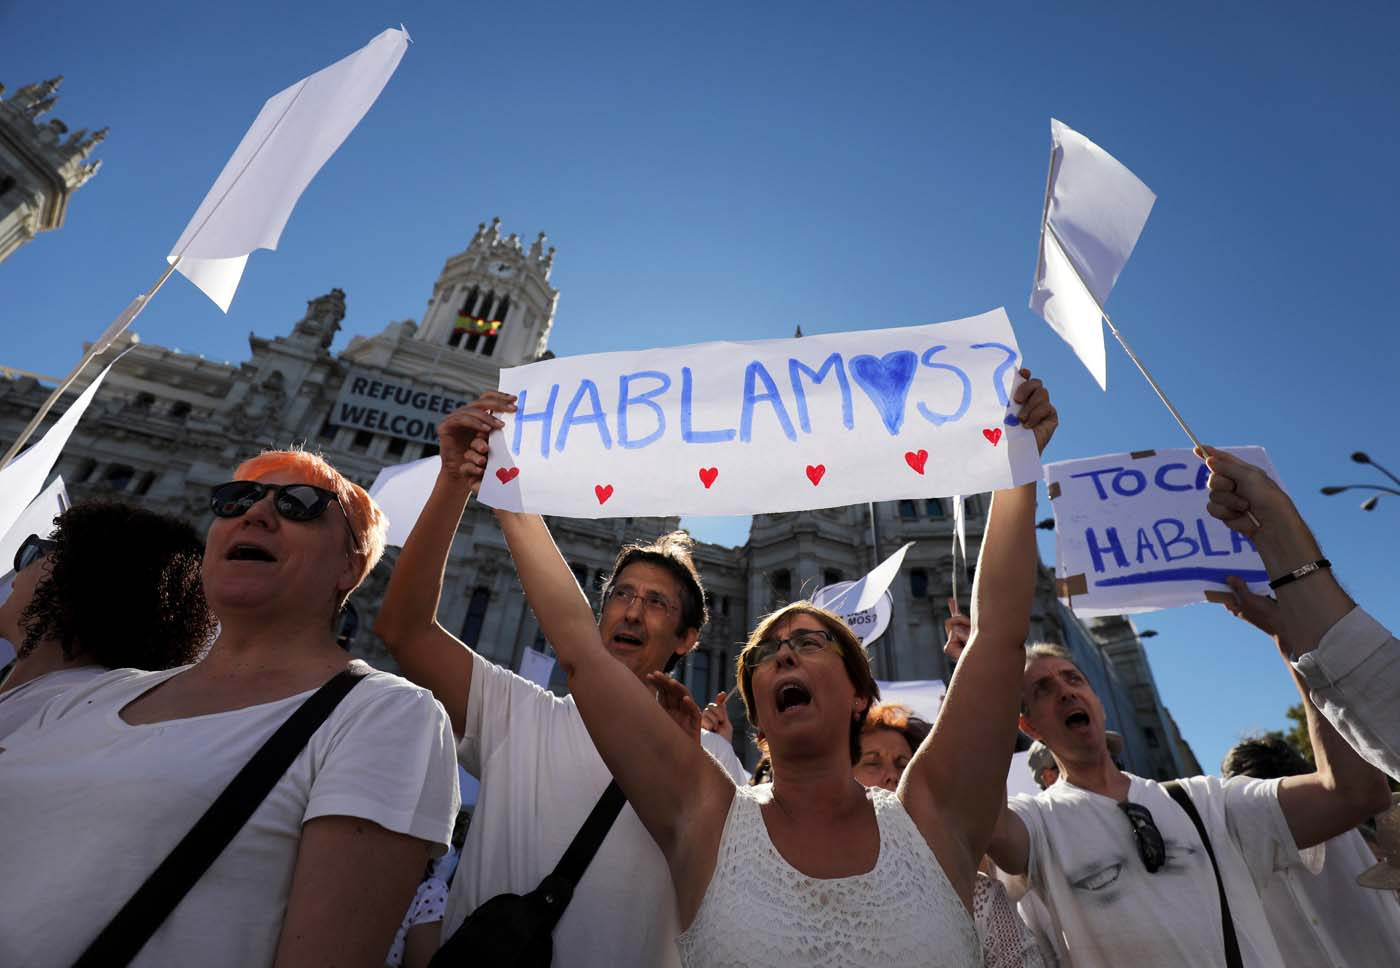 """A couple hold a sign which reads """"Shall we talk?"""" in Spanish during a demonstration in favour of dialogue to resolve Catalonia´s bid for independence, in Madrid, Spain, October 7, 2017. REUTERS/Sergio Perez"""